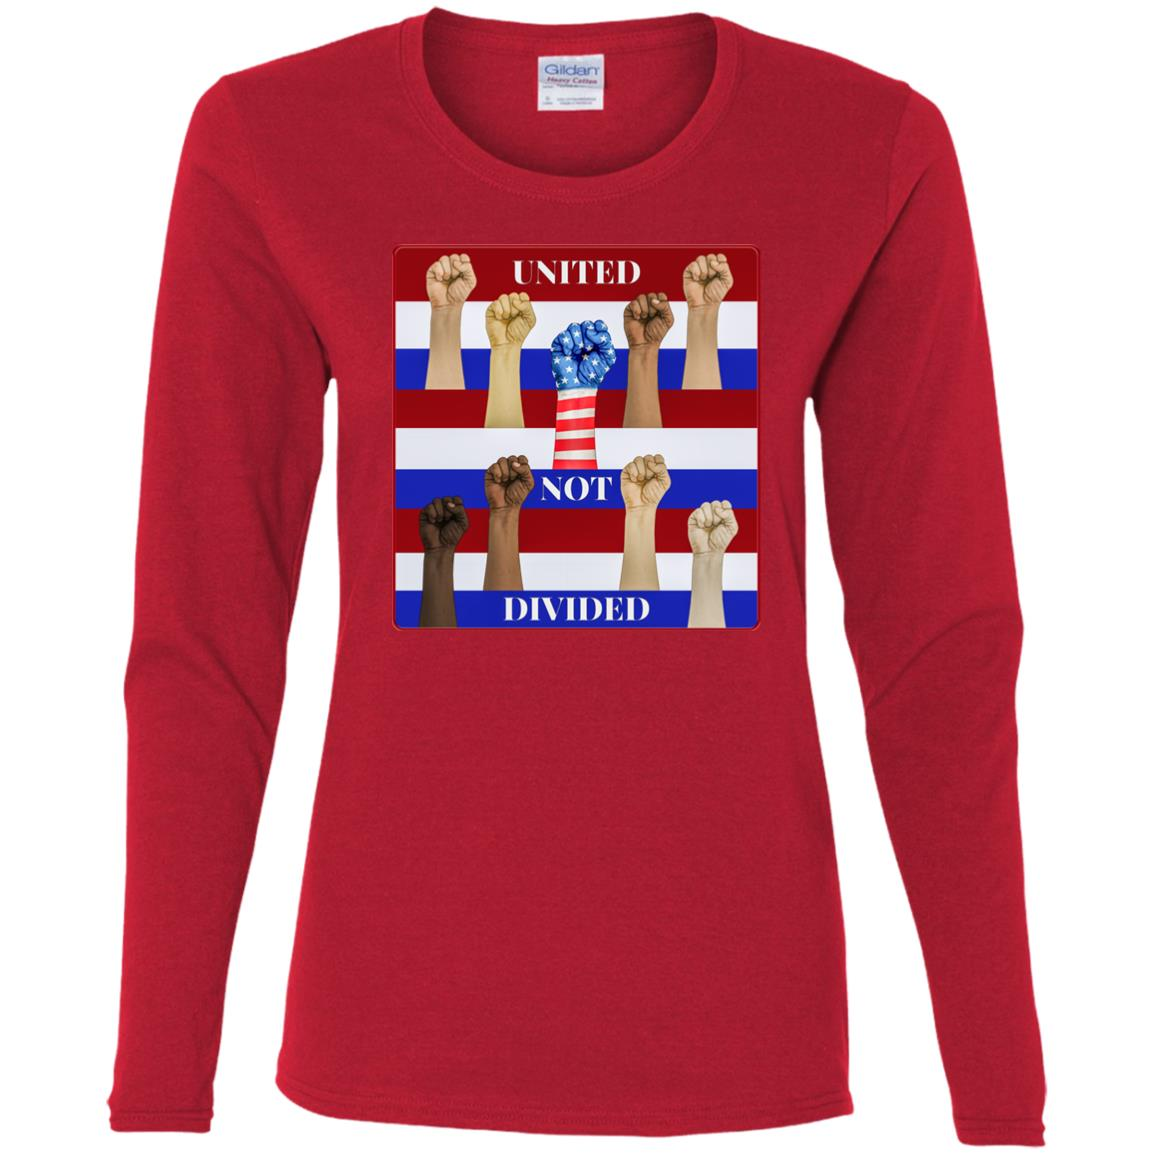 United Not Divided - Women's Long Sleeve Tee